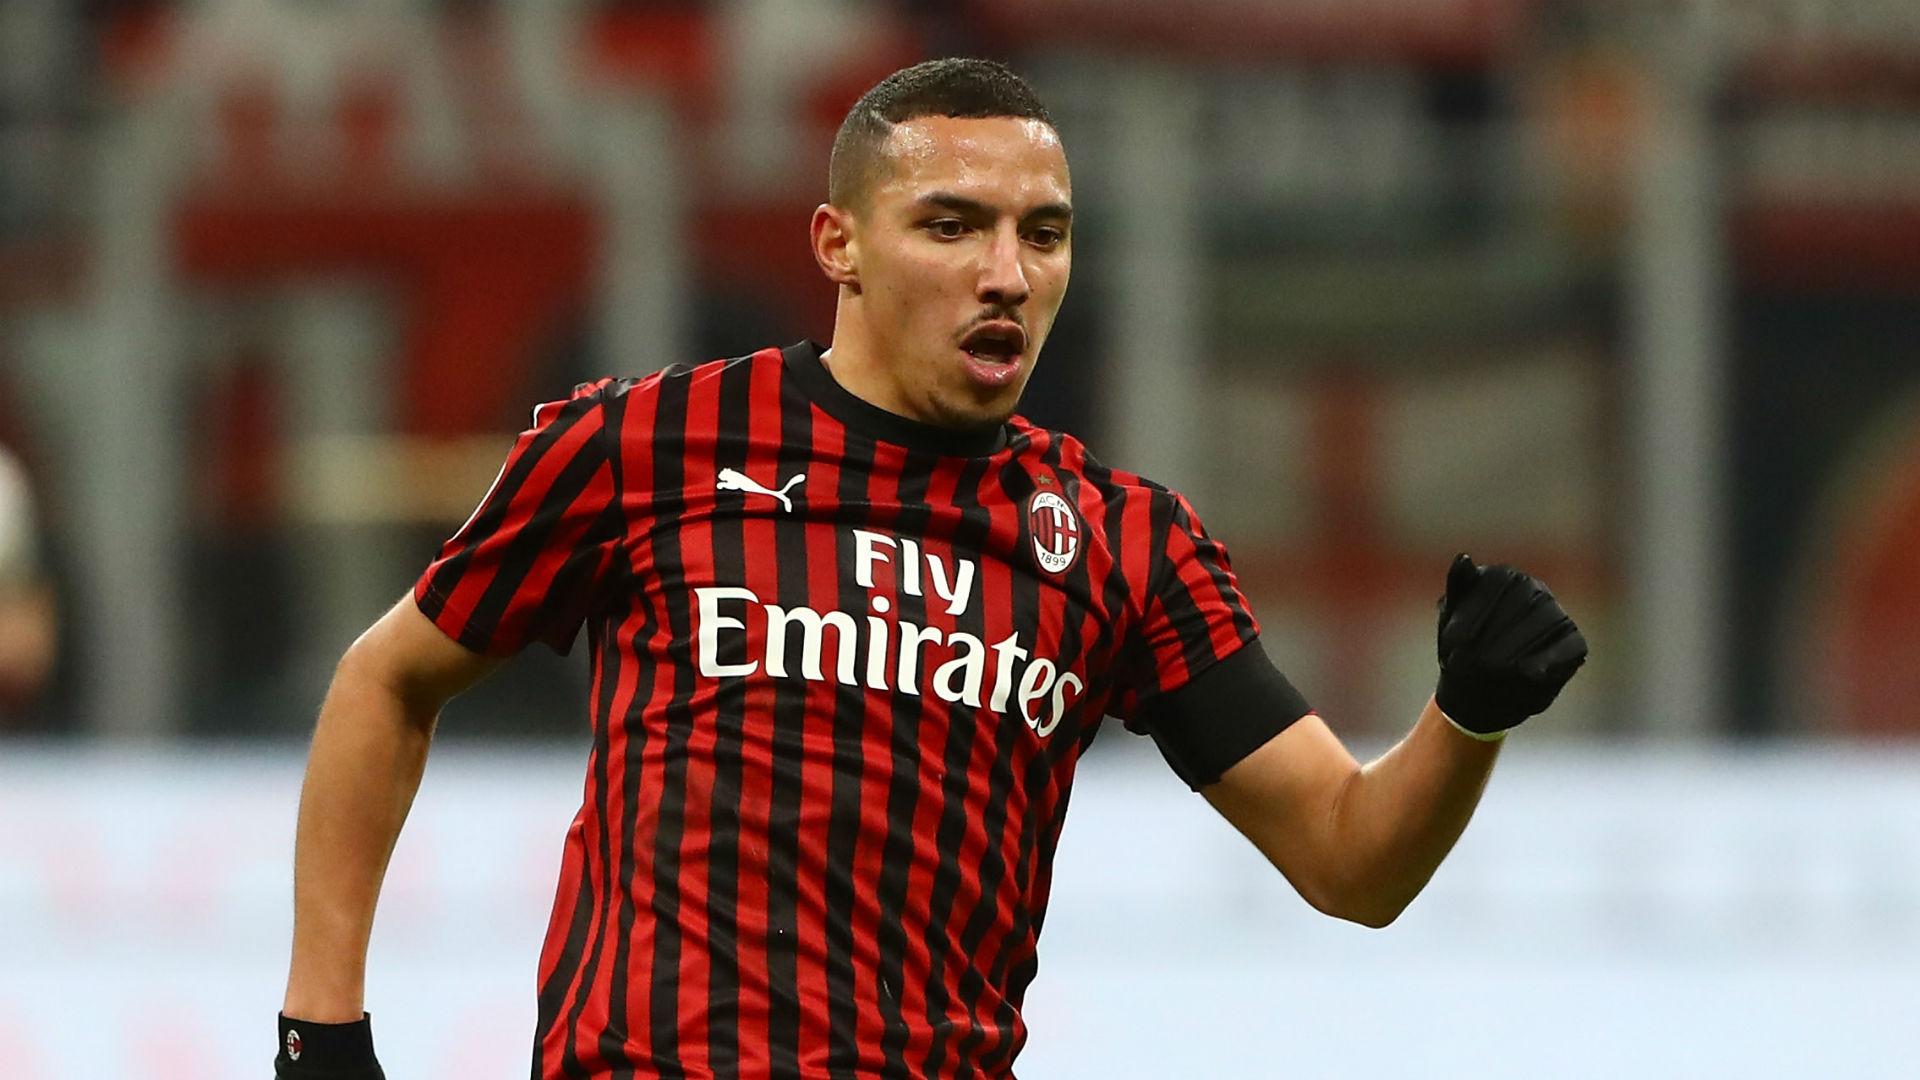 Coronavirus: AC Milan's Bennacer misses football but calls for unity